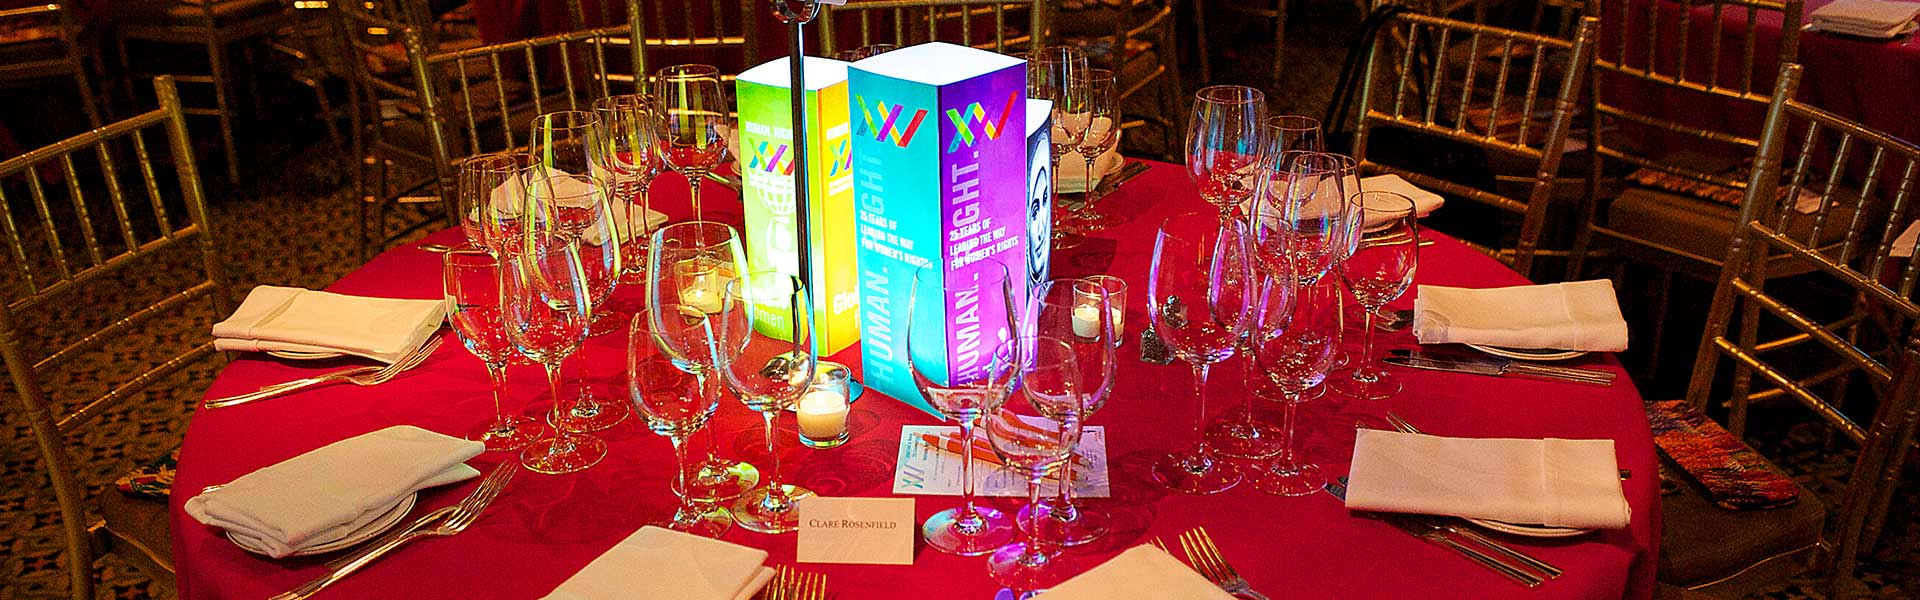 Illuminated Corporate Branded Centerpieces